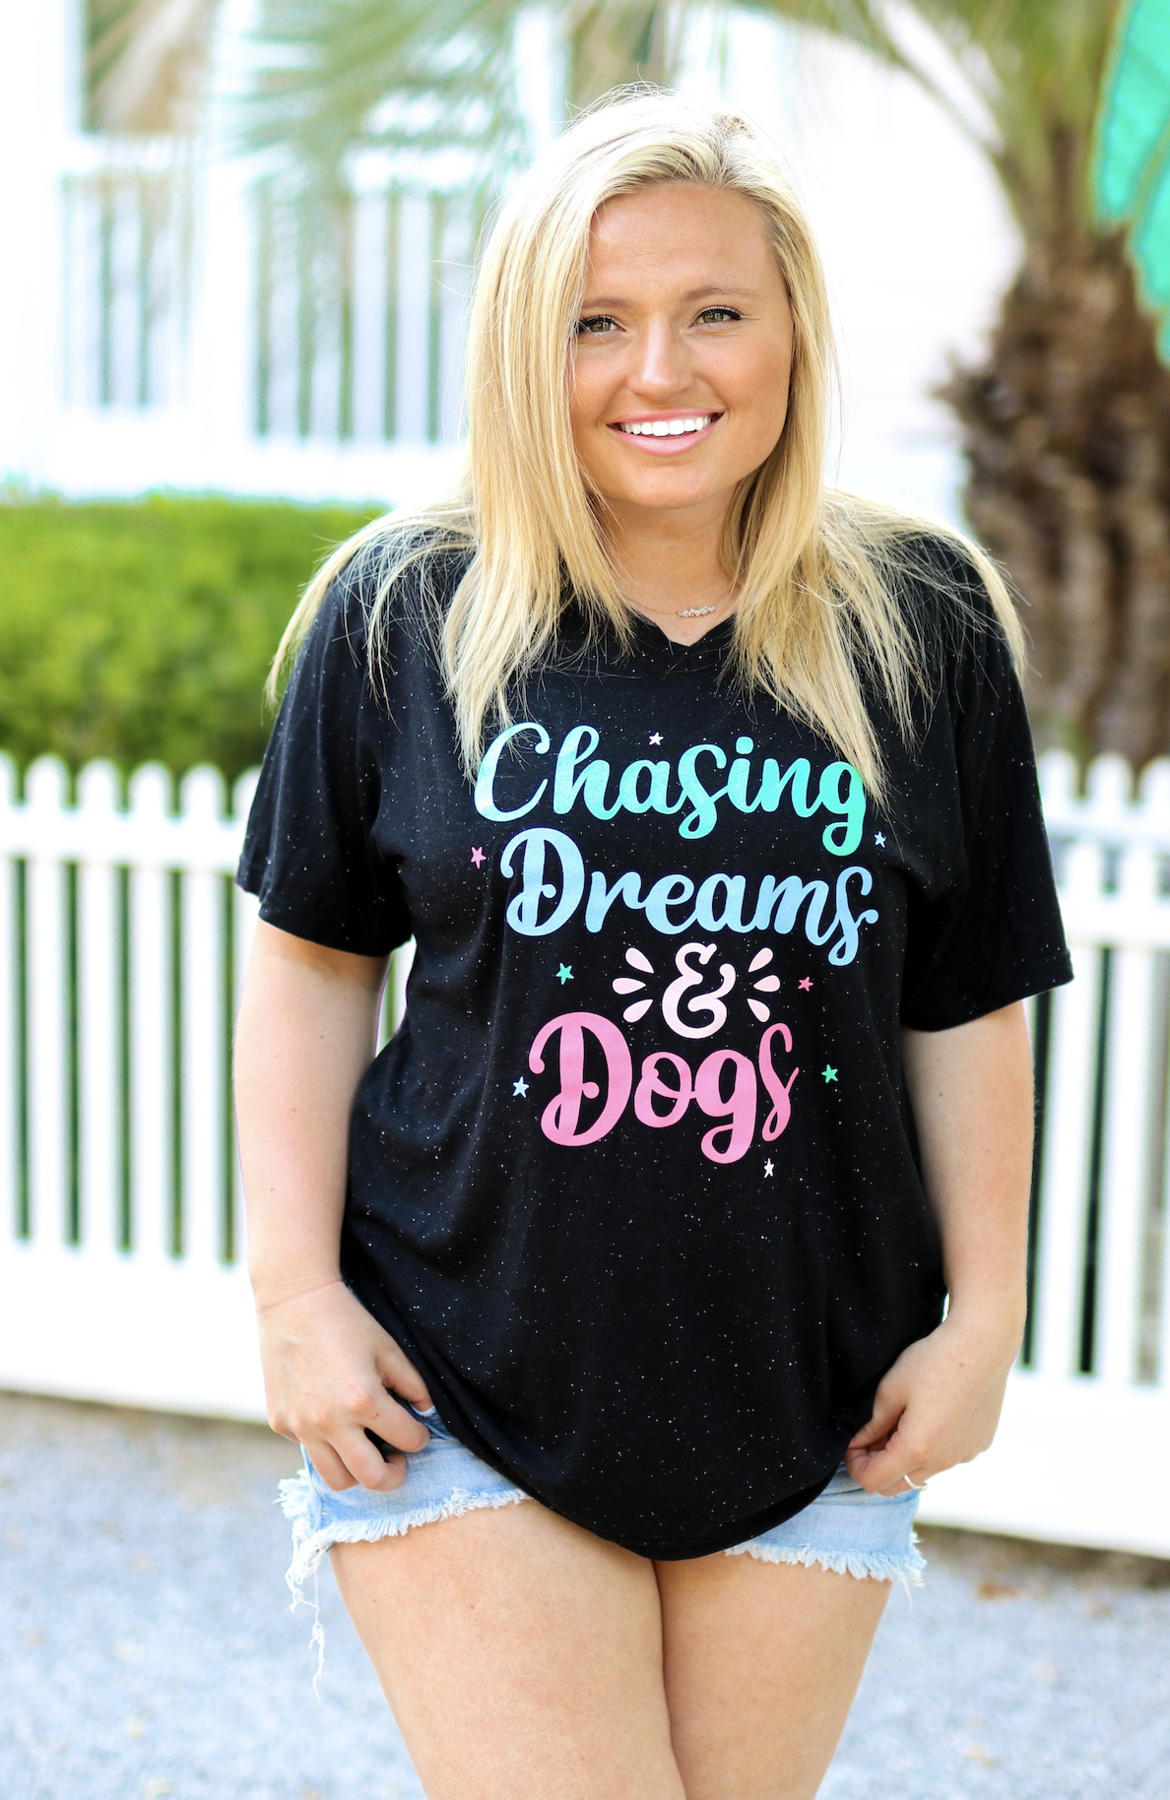 Jadelynn Brooke Chasing Dreams & Dogs (Black Speckle) - S/S / V-Neck